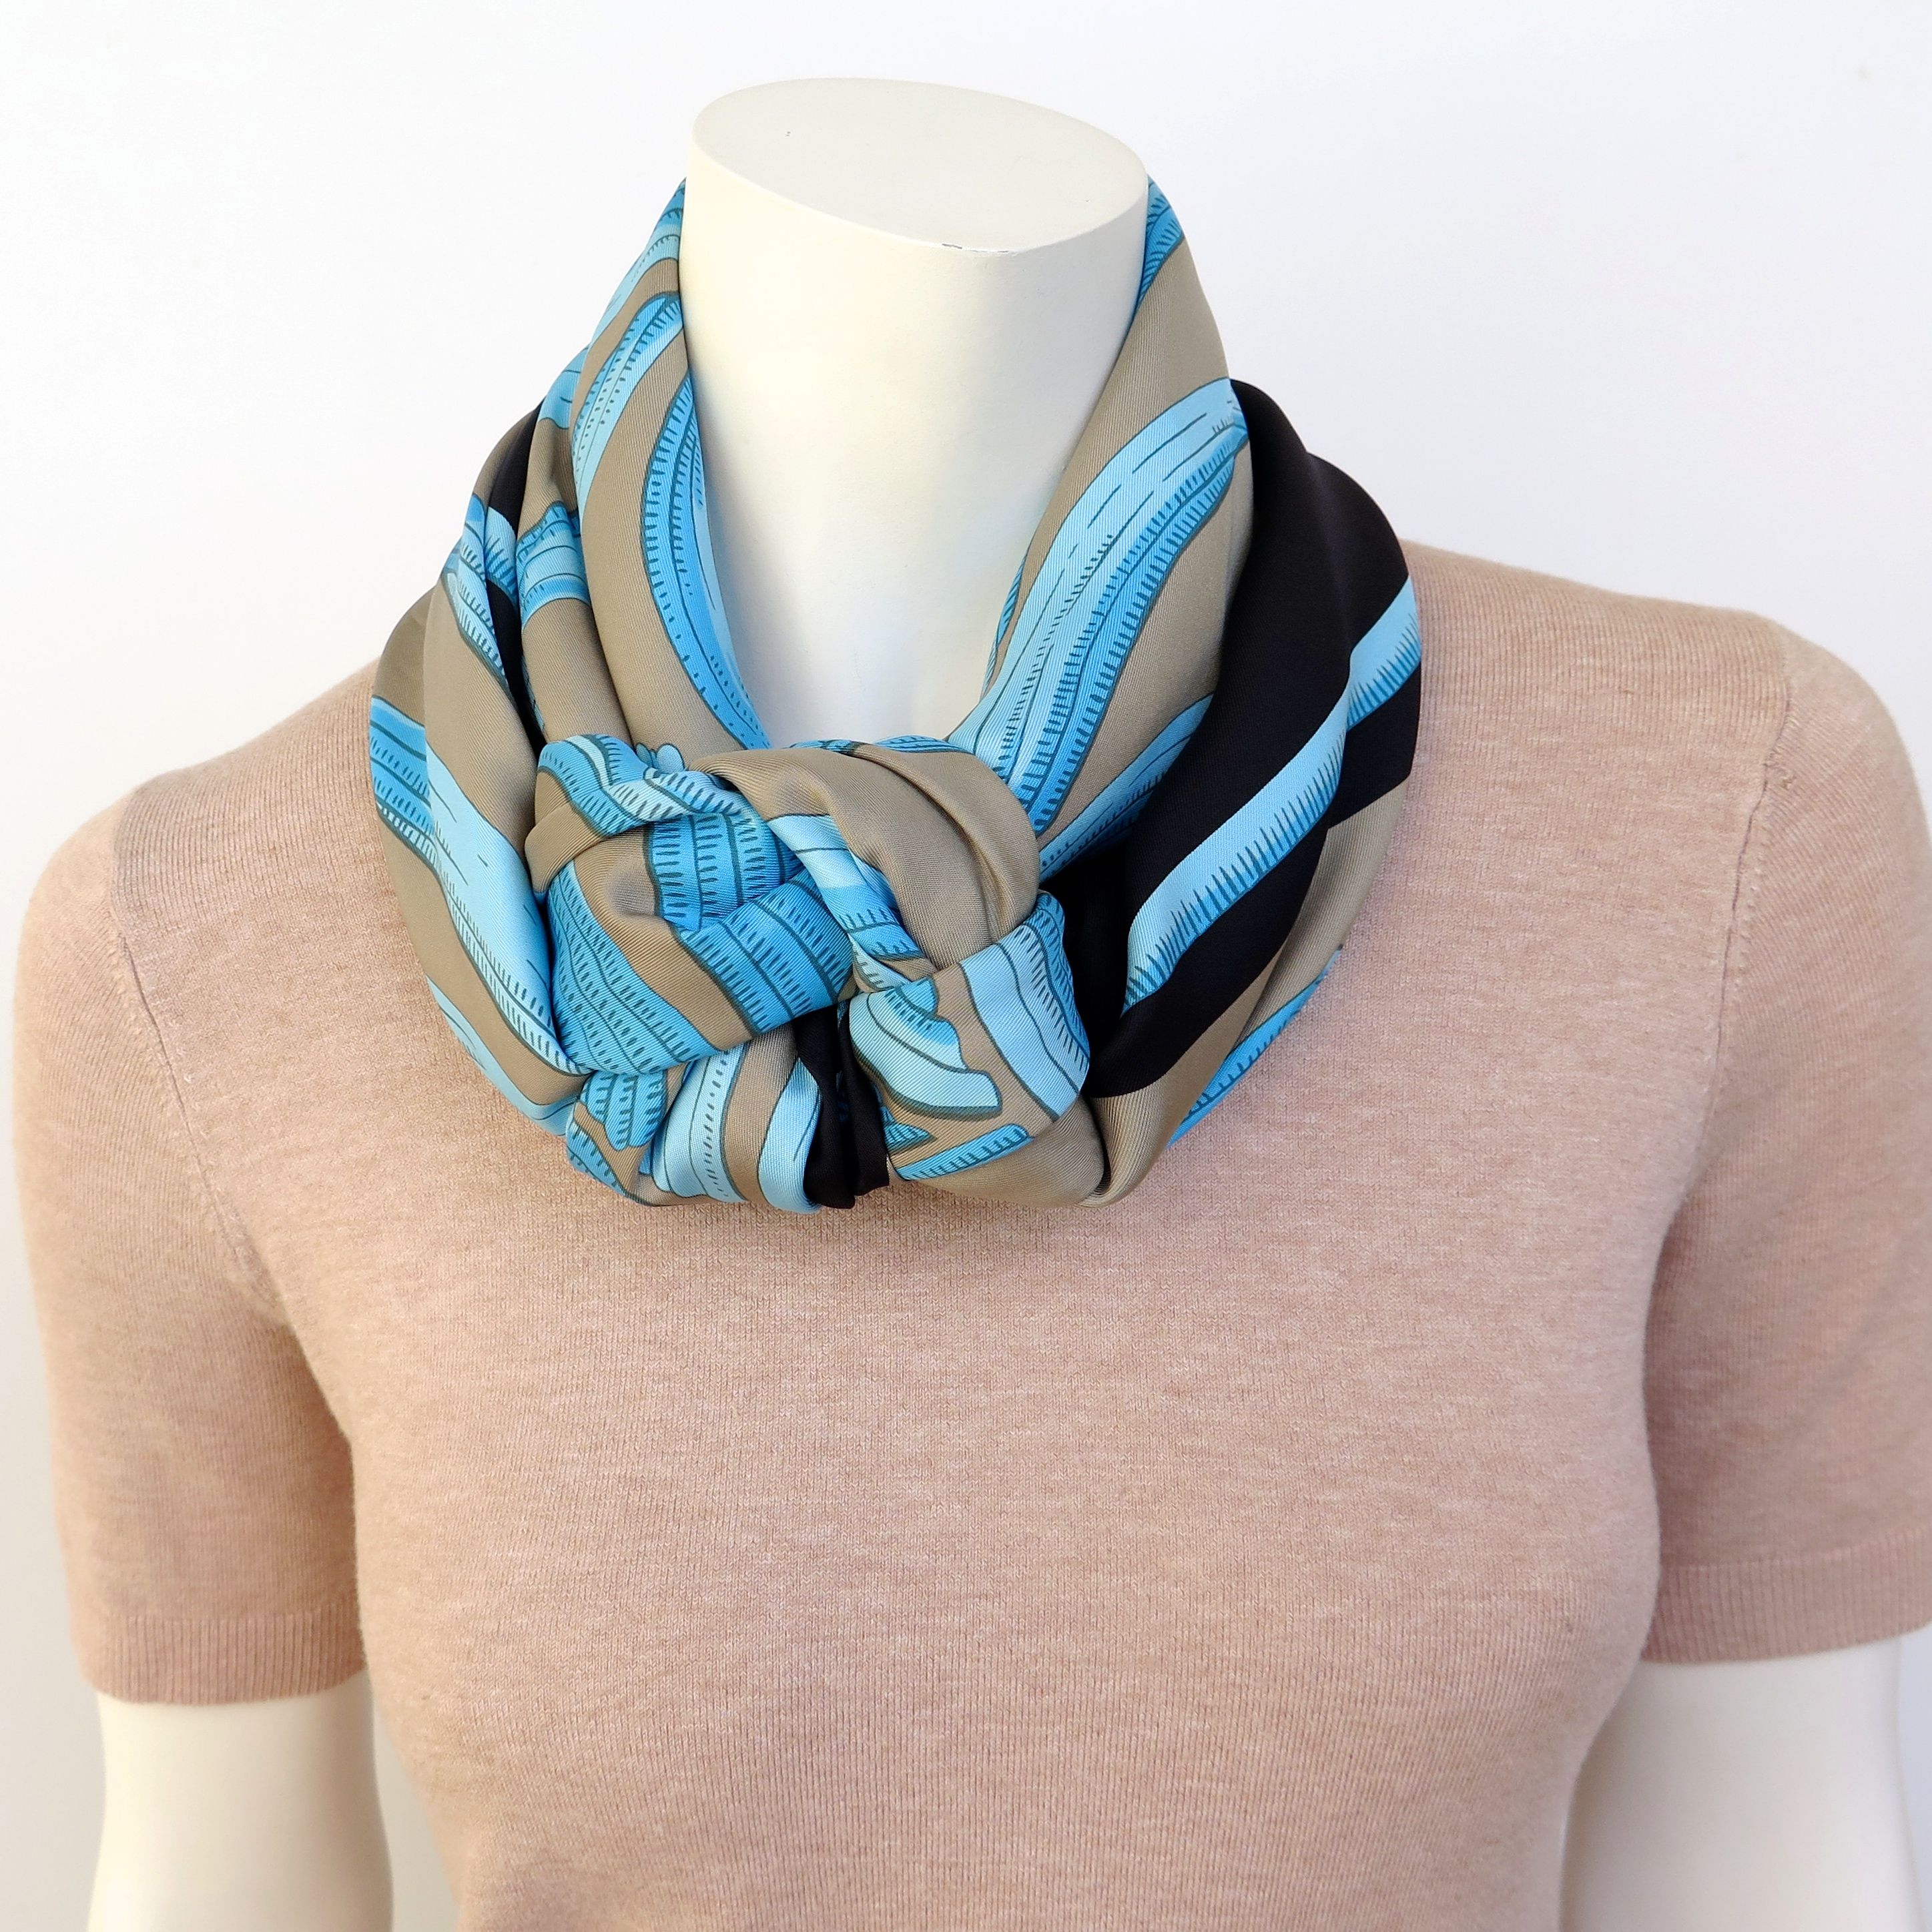 Friendship knot in 2020 Scarf, Friendship knot, Hermes scarf